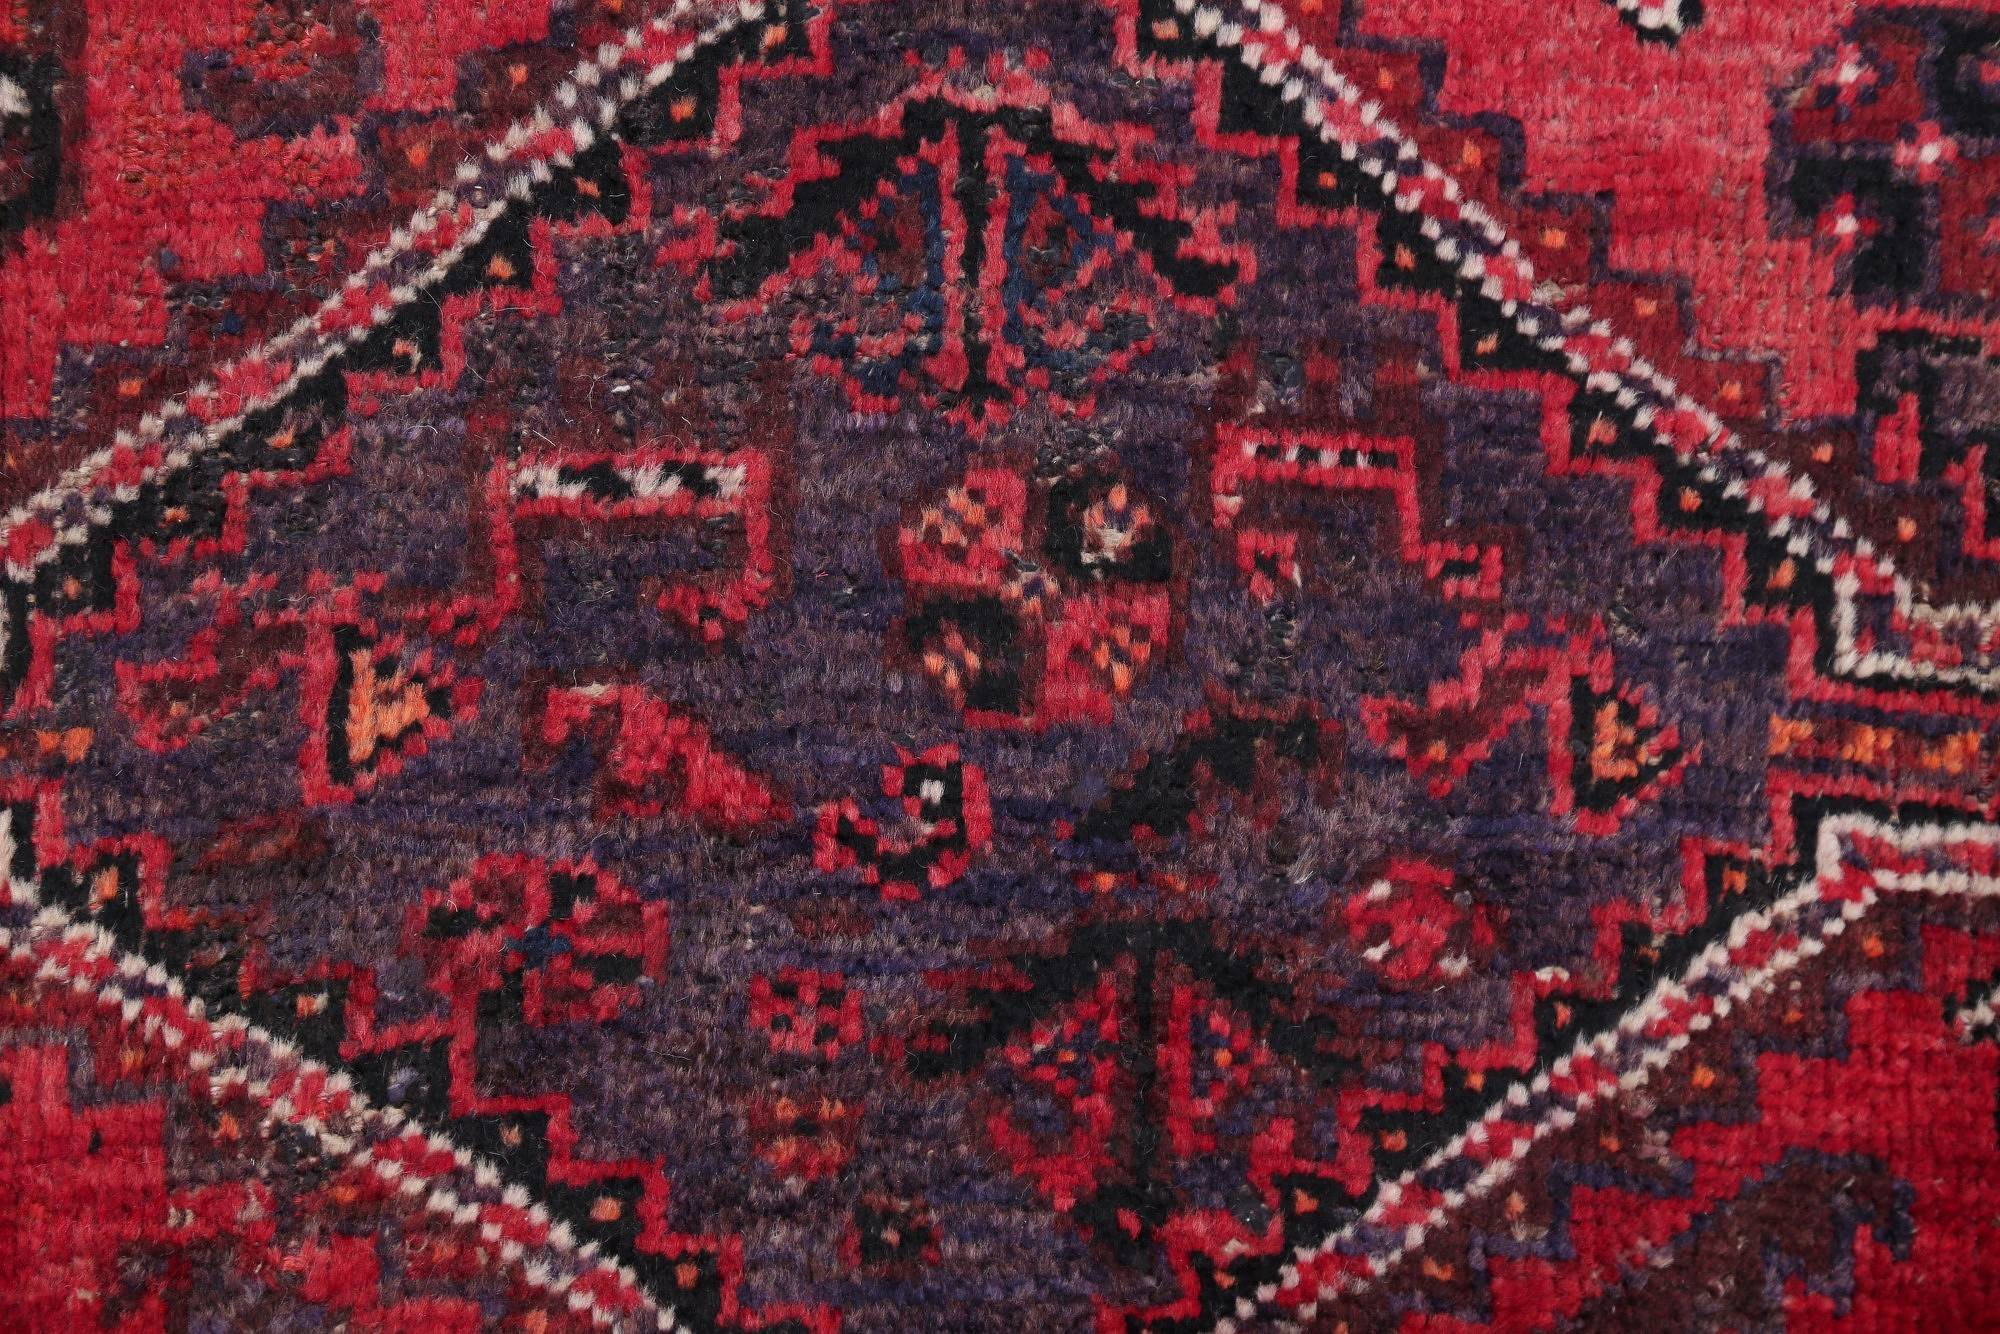 Antique Geometric Tribal Qashqai Persian Hand-Knotted 5x6 Pink Wool Area Rug